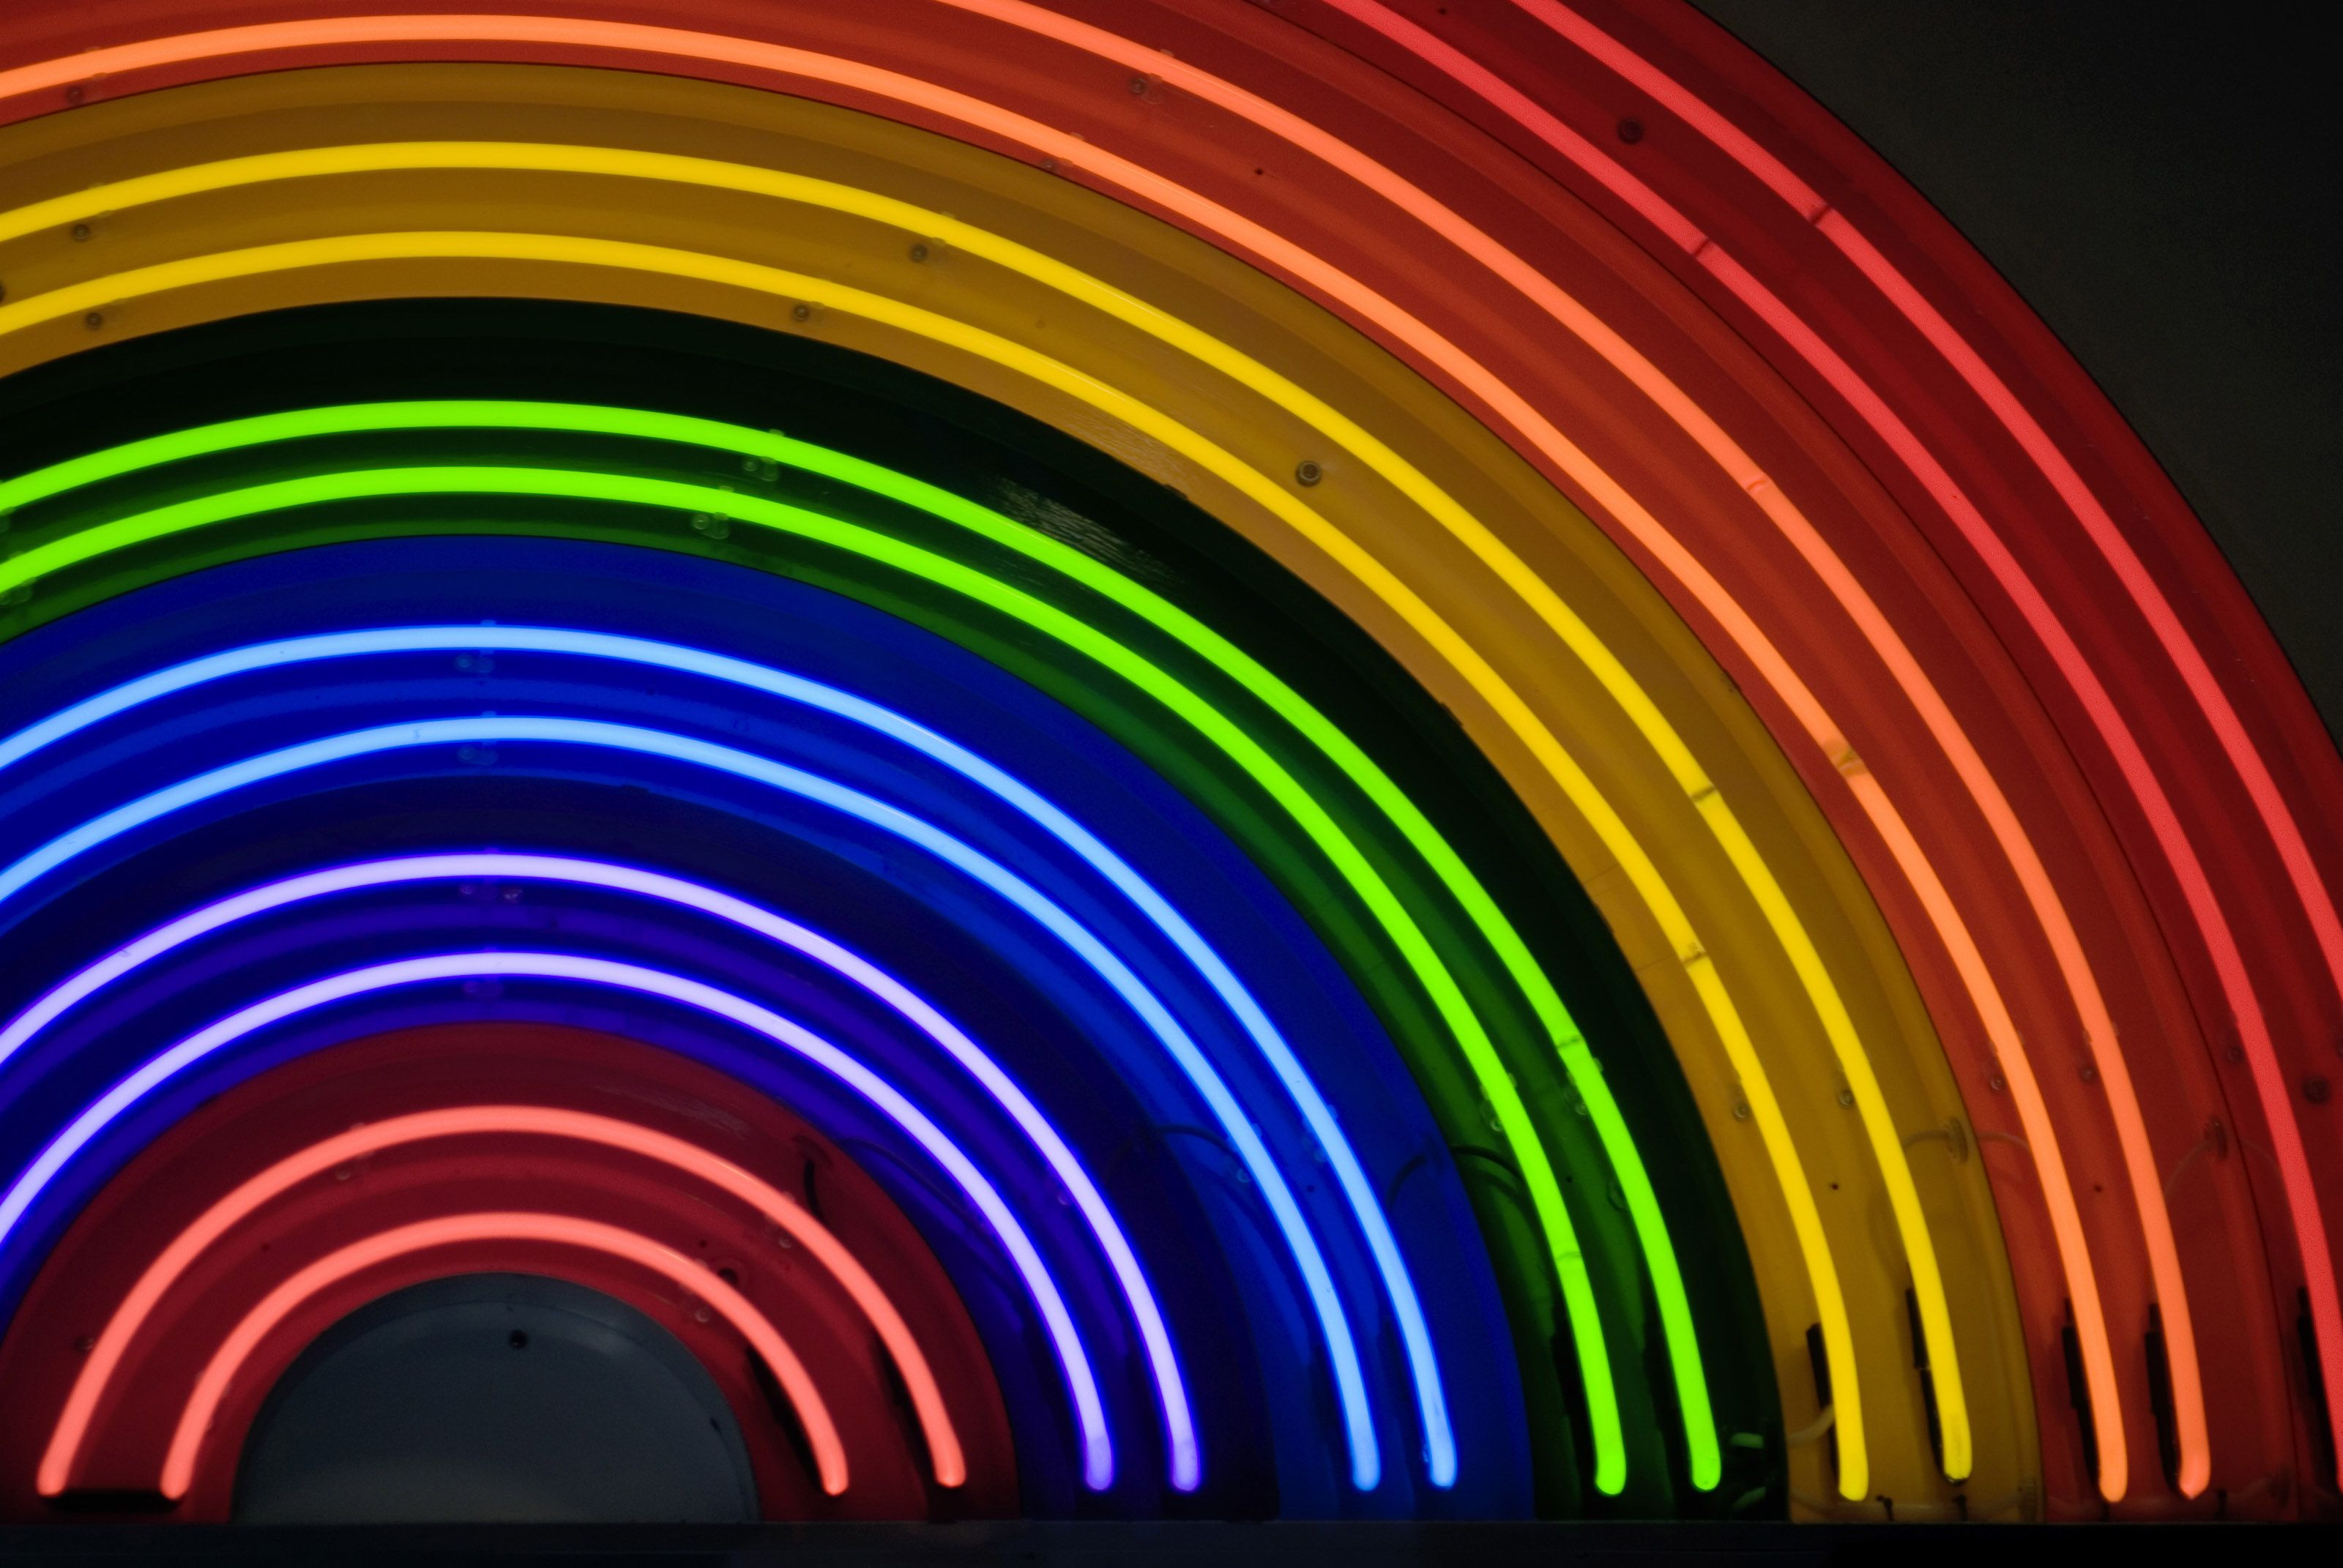 Rainbow Neon Sign With Images Neon Rainbow Rainbow Wallpaper